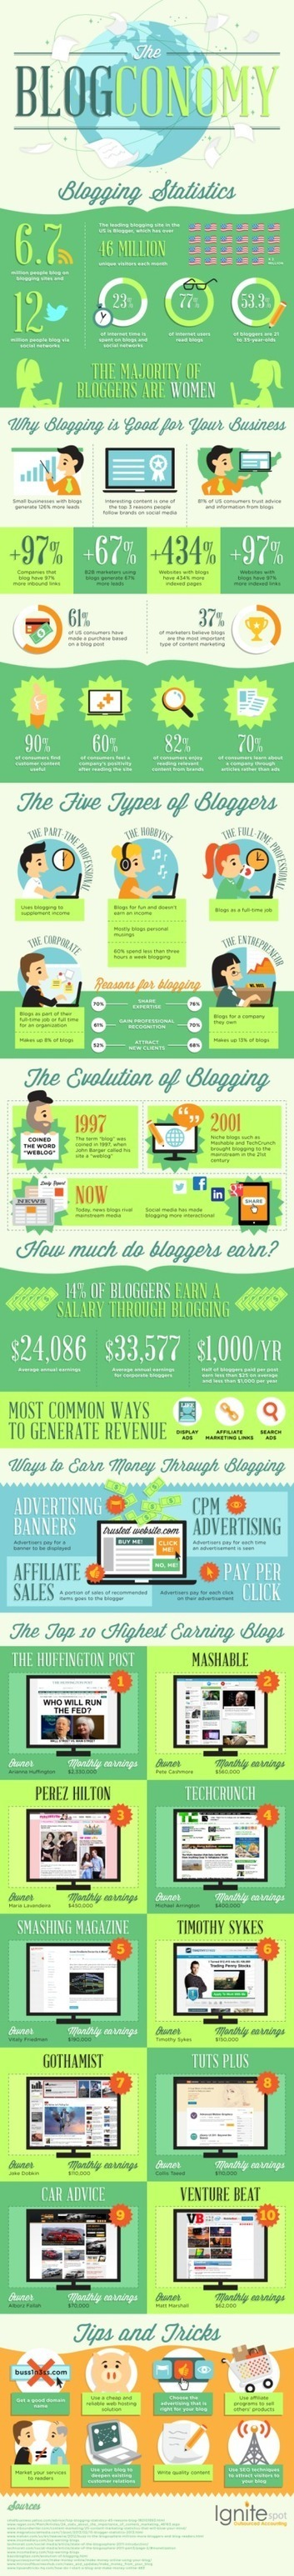 Why Every Business Needs a Blog [Infographic] | Media & Marketing | Scoop.it